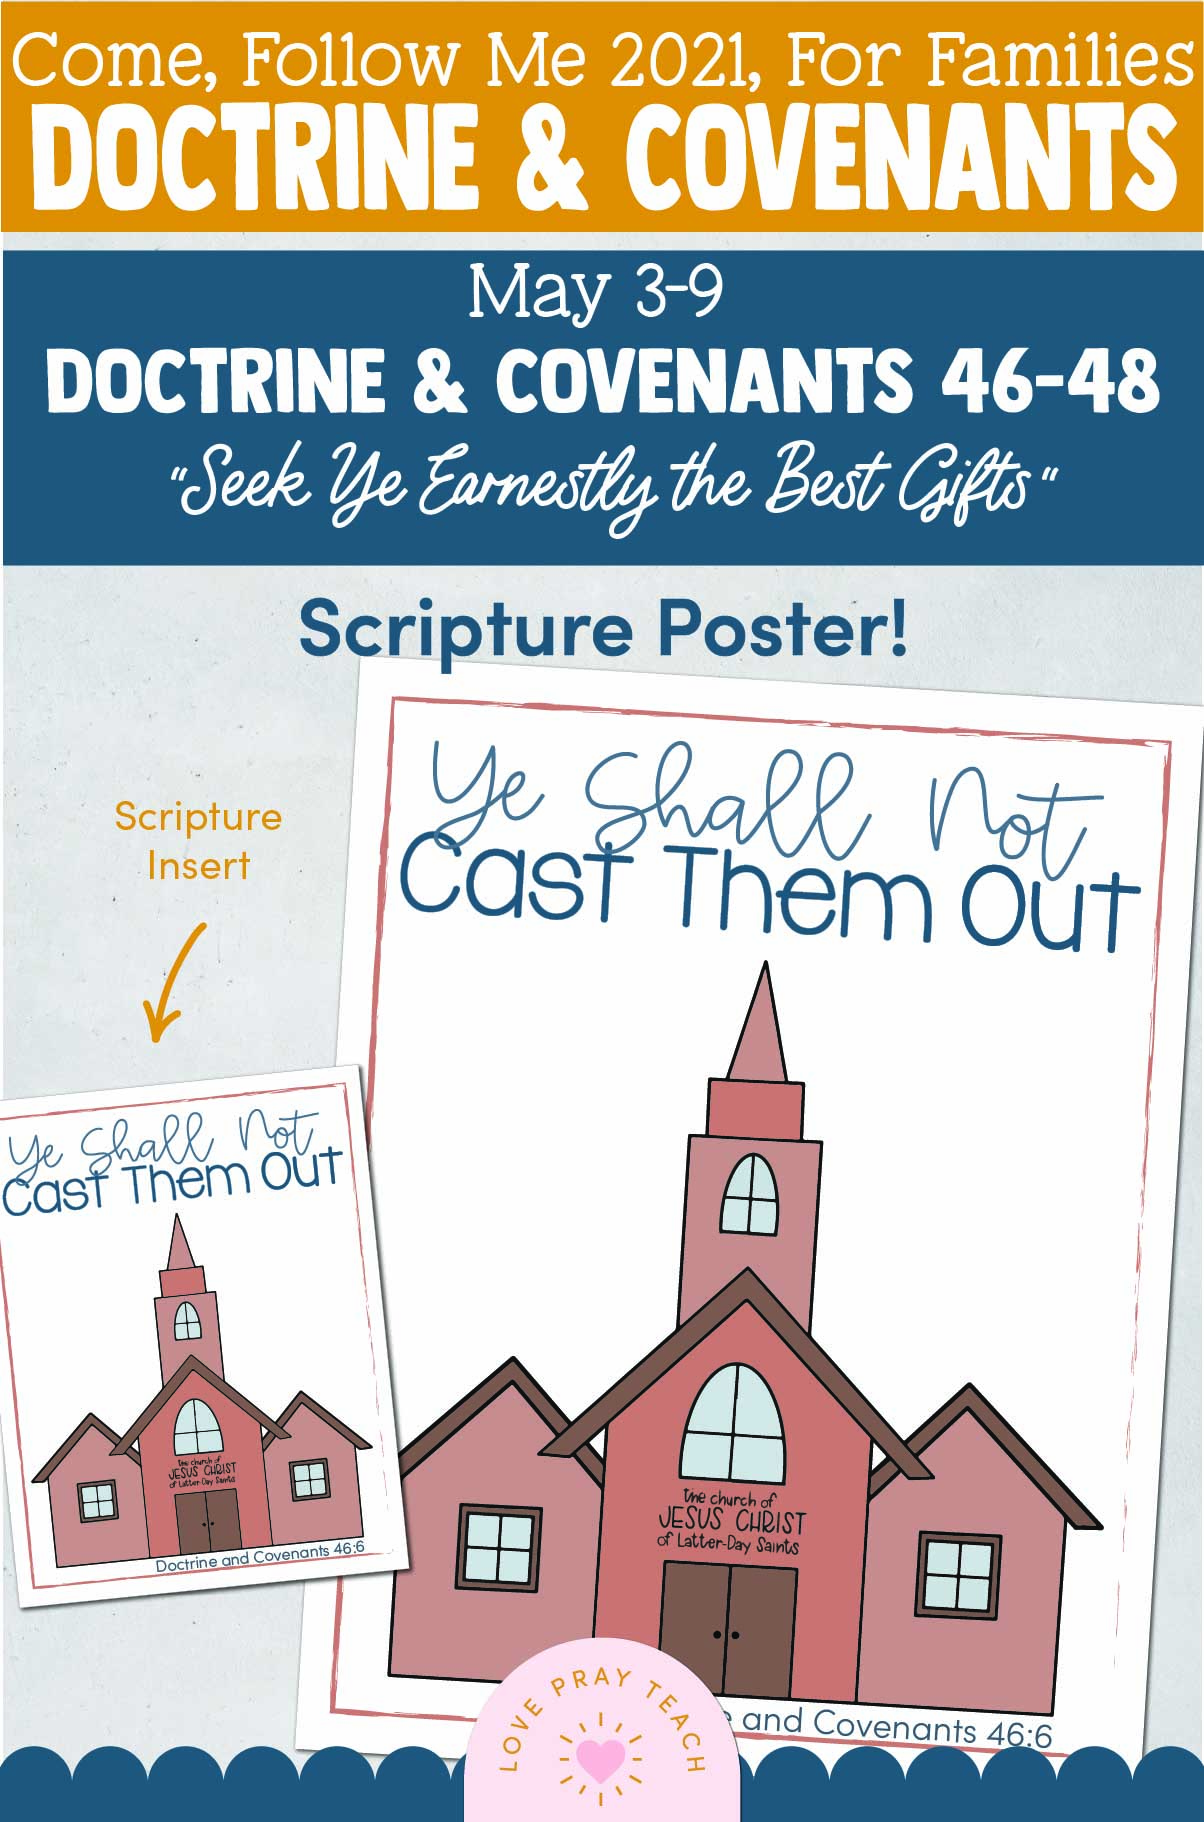 """Doctrine And Covenants 2021, May Week 2 Doctrine and Covenants 46-48: May 3-9, """"Seek Ye Earnestly the Best Gifts"""""""